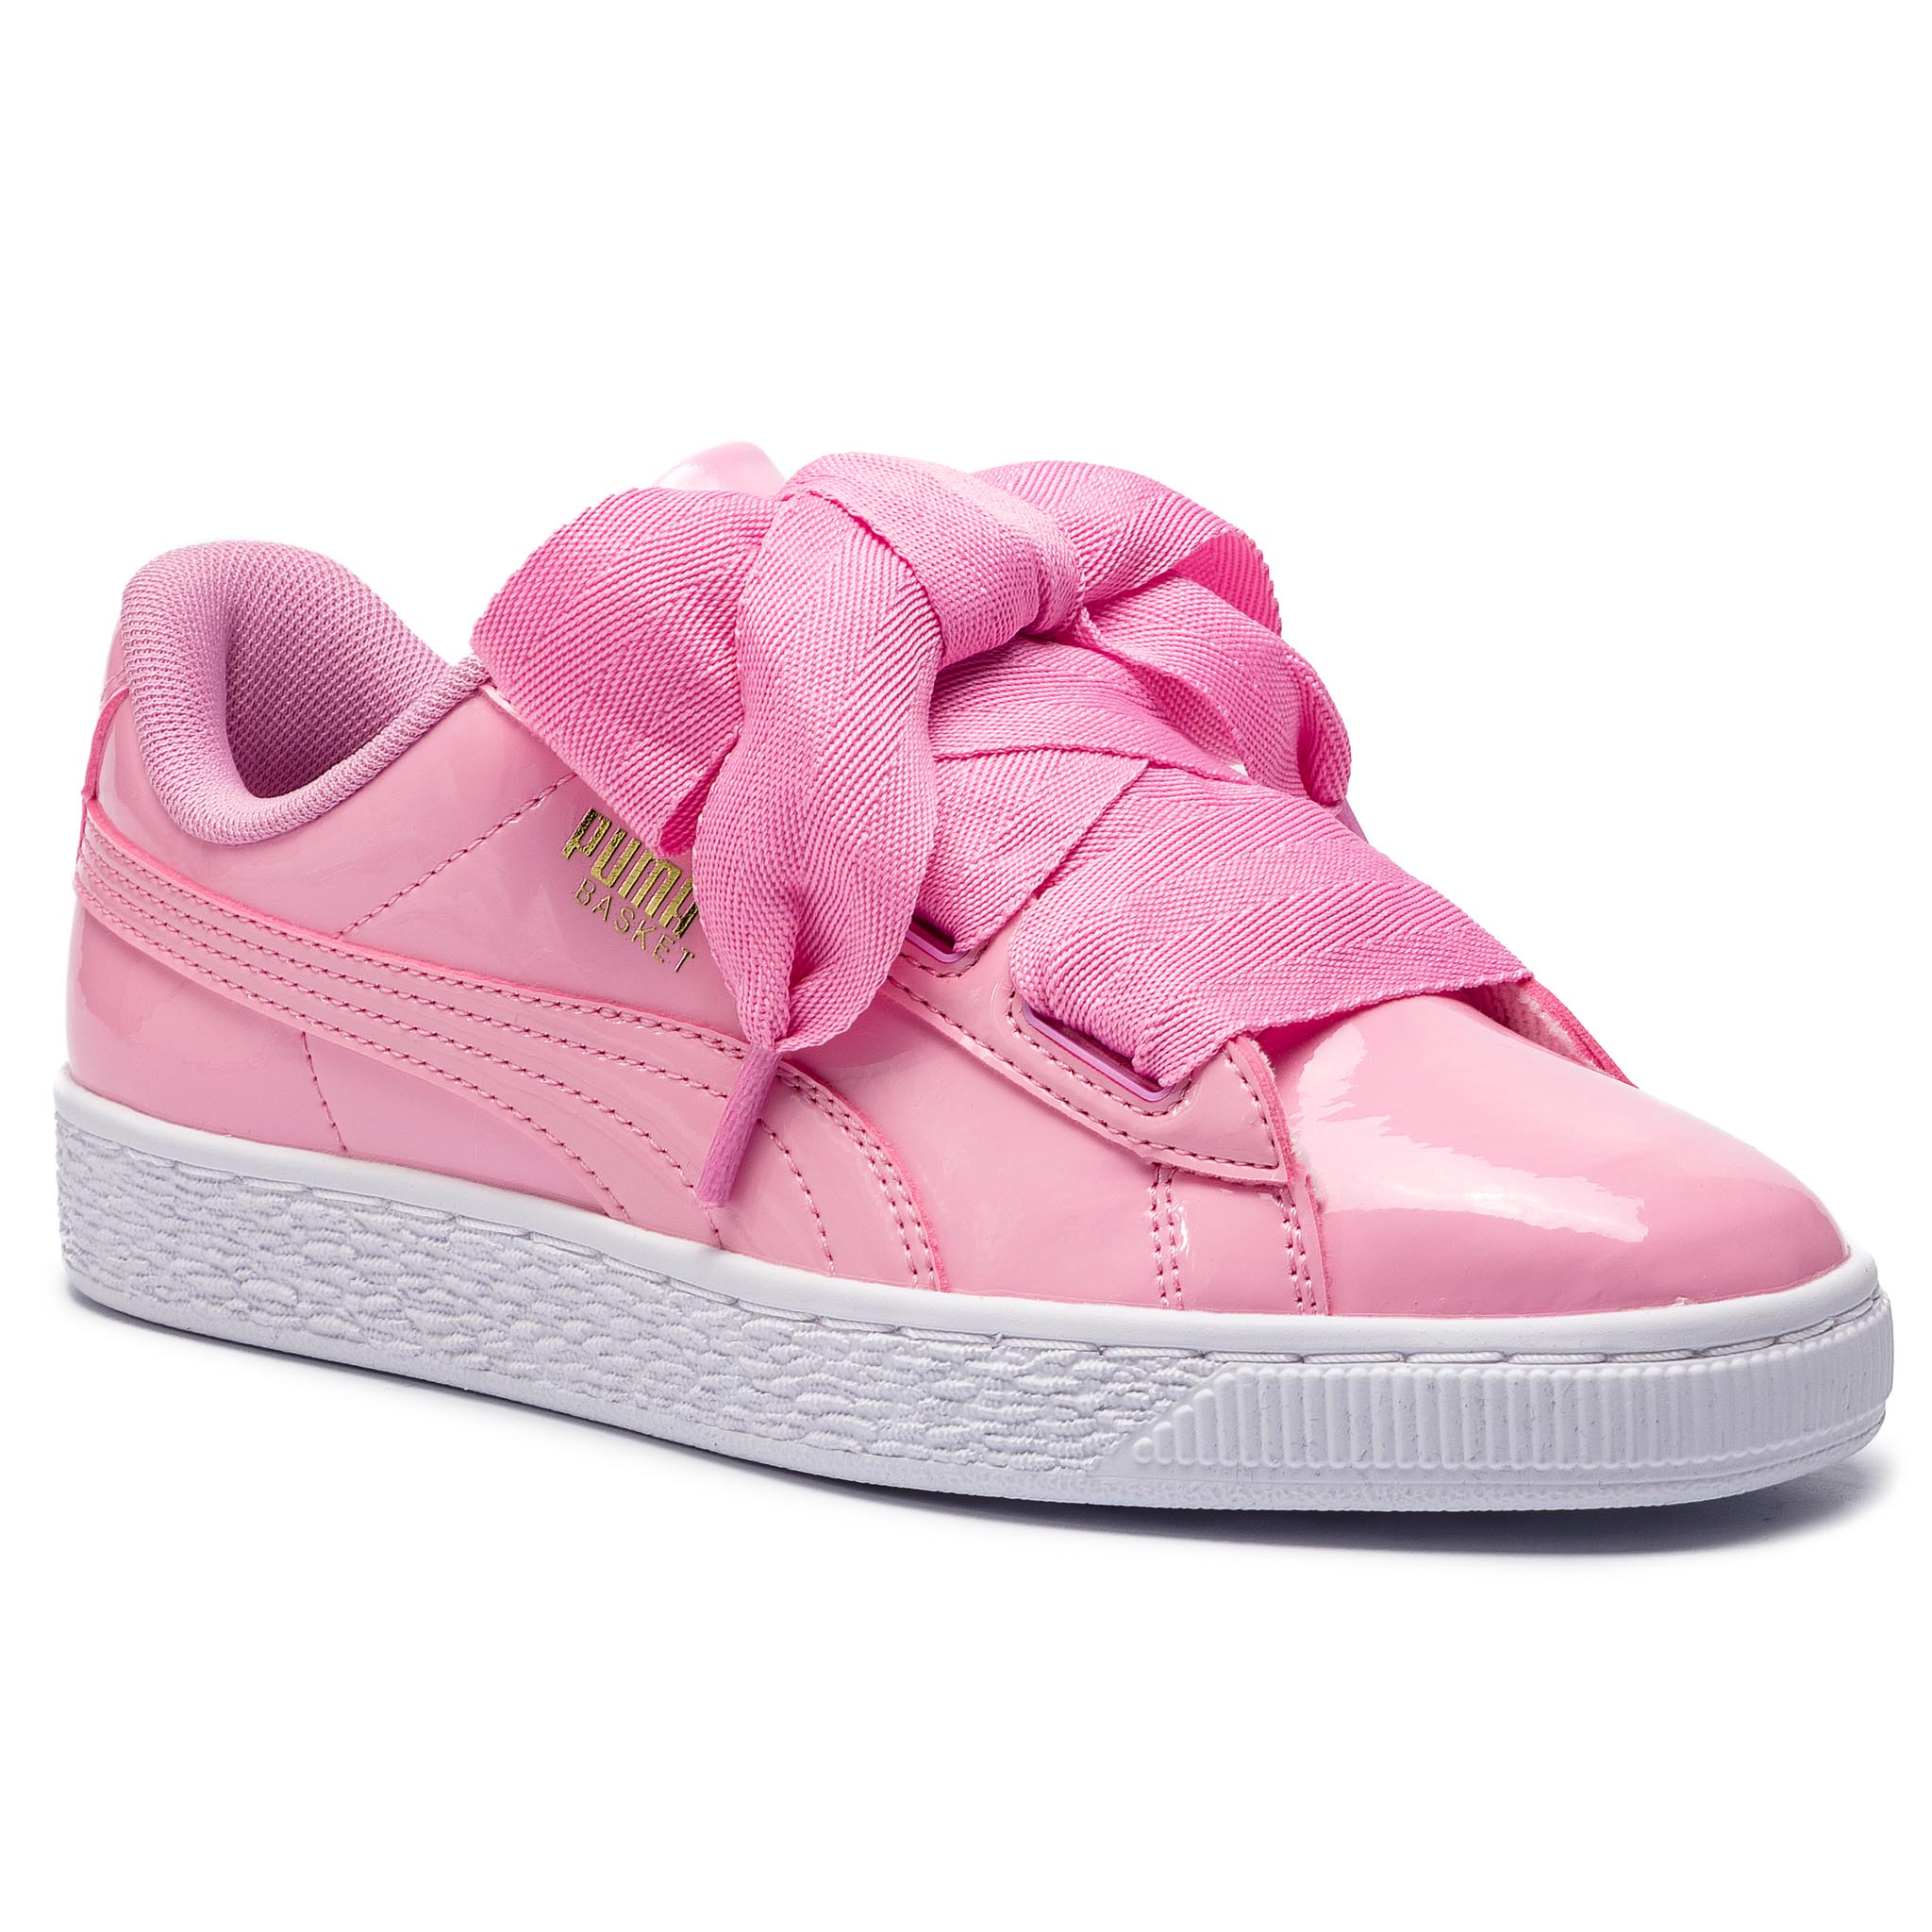 Sneakersy PUMA – Basket Heart Patent Jr 364817 03 Prism Pink/Pcoat/Gold/White